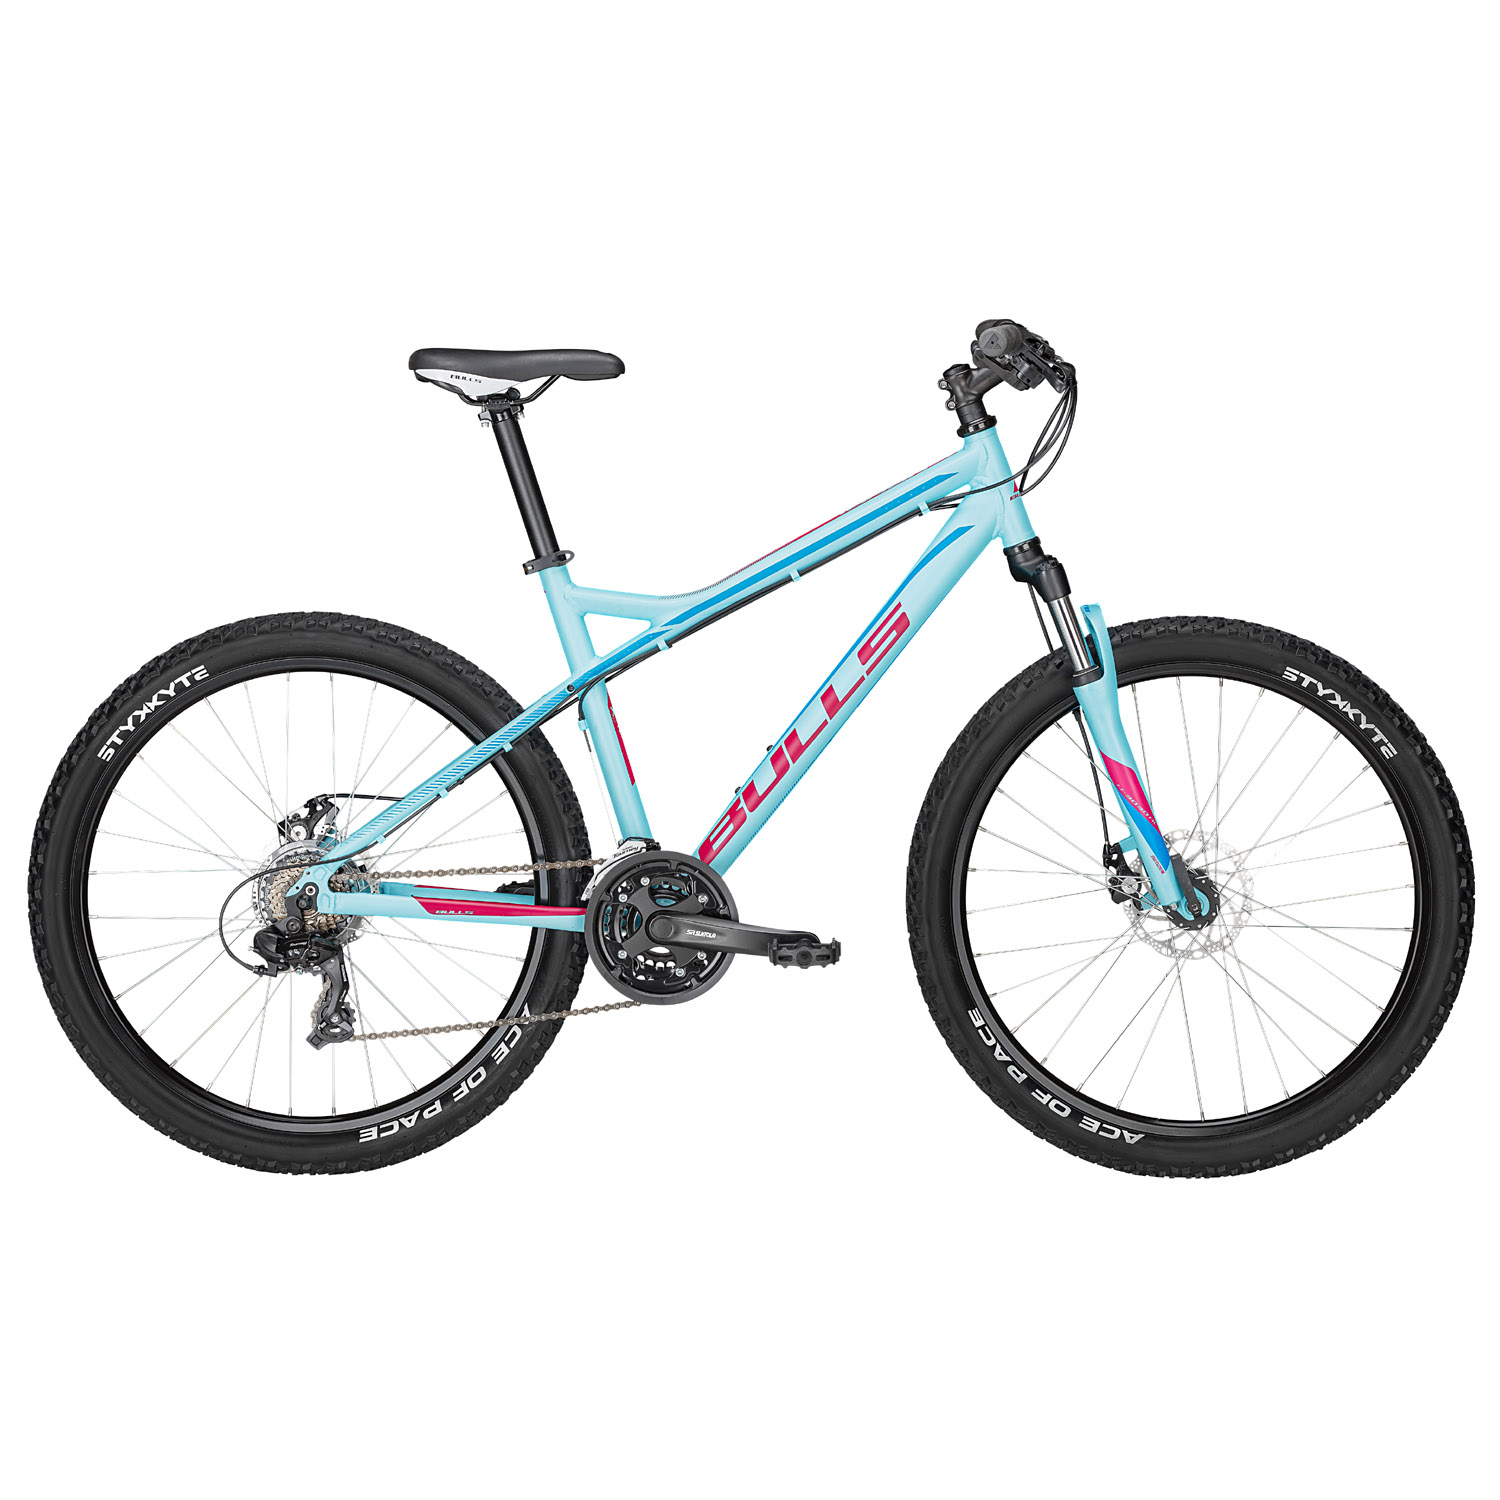 bulls nandi mountainbike 26 zoll damen 37 cm wei. Black Bedroom Furniture Sets. Home Design Ideas